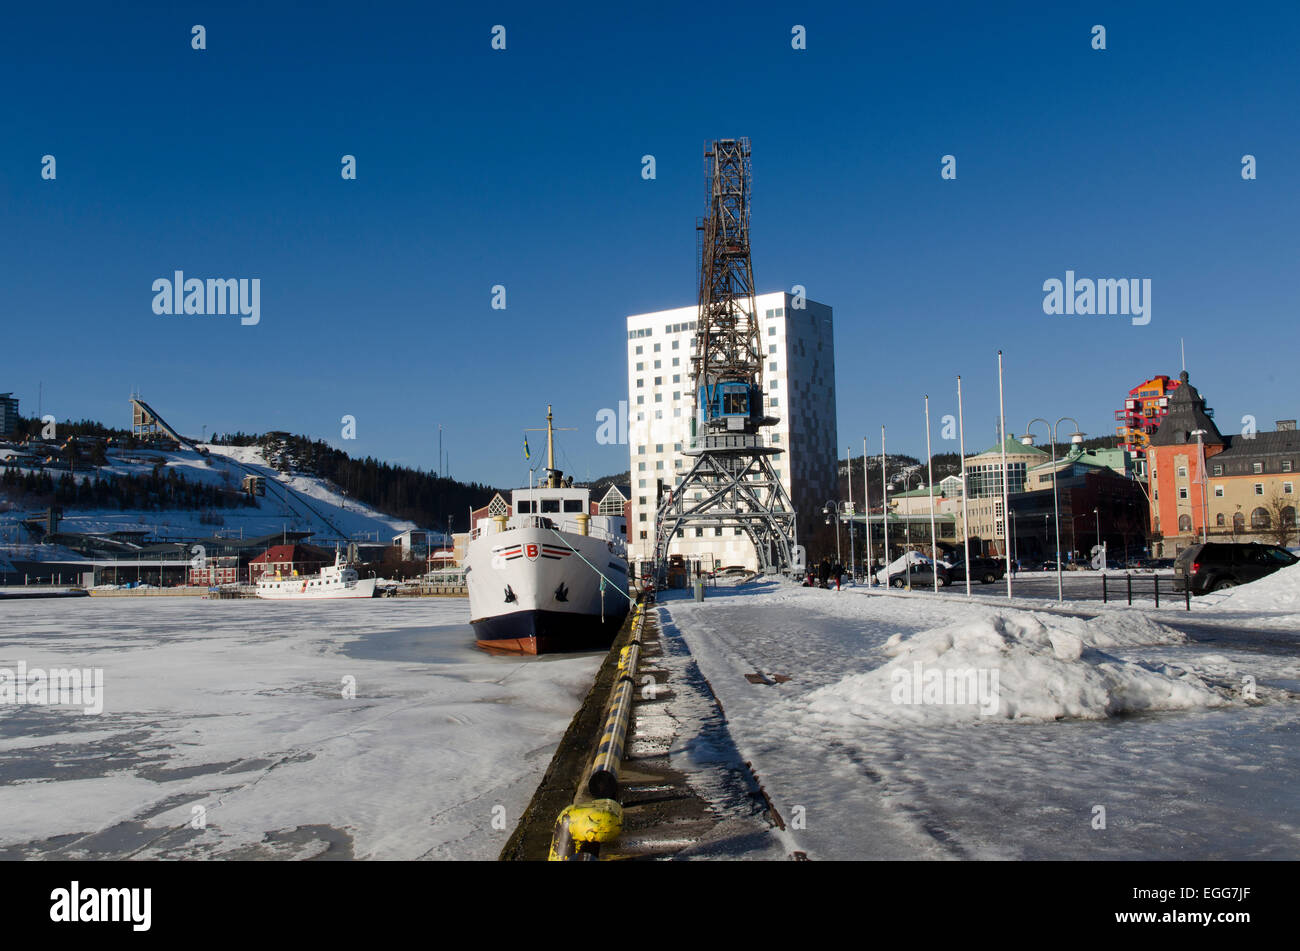 View from ornskodsvik harbor with ski jumping facility in background. - Stock Image